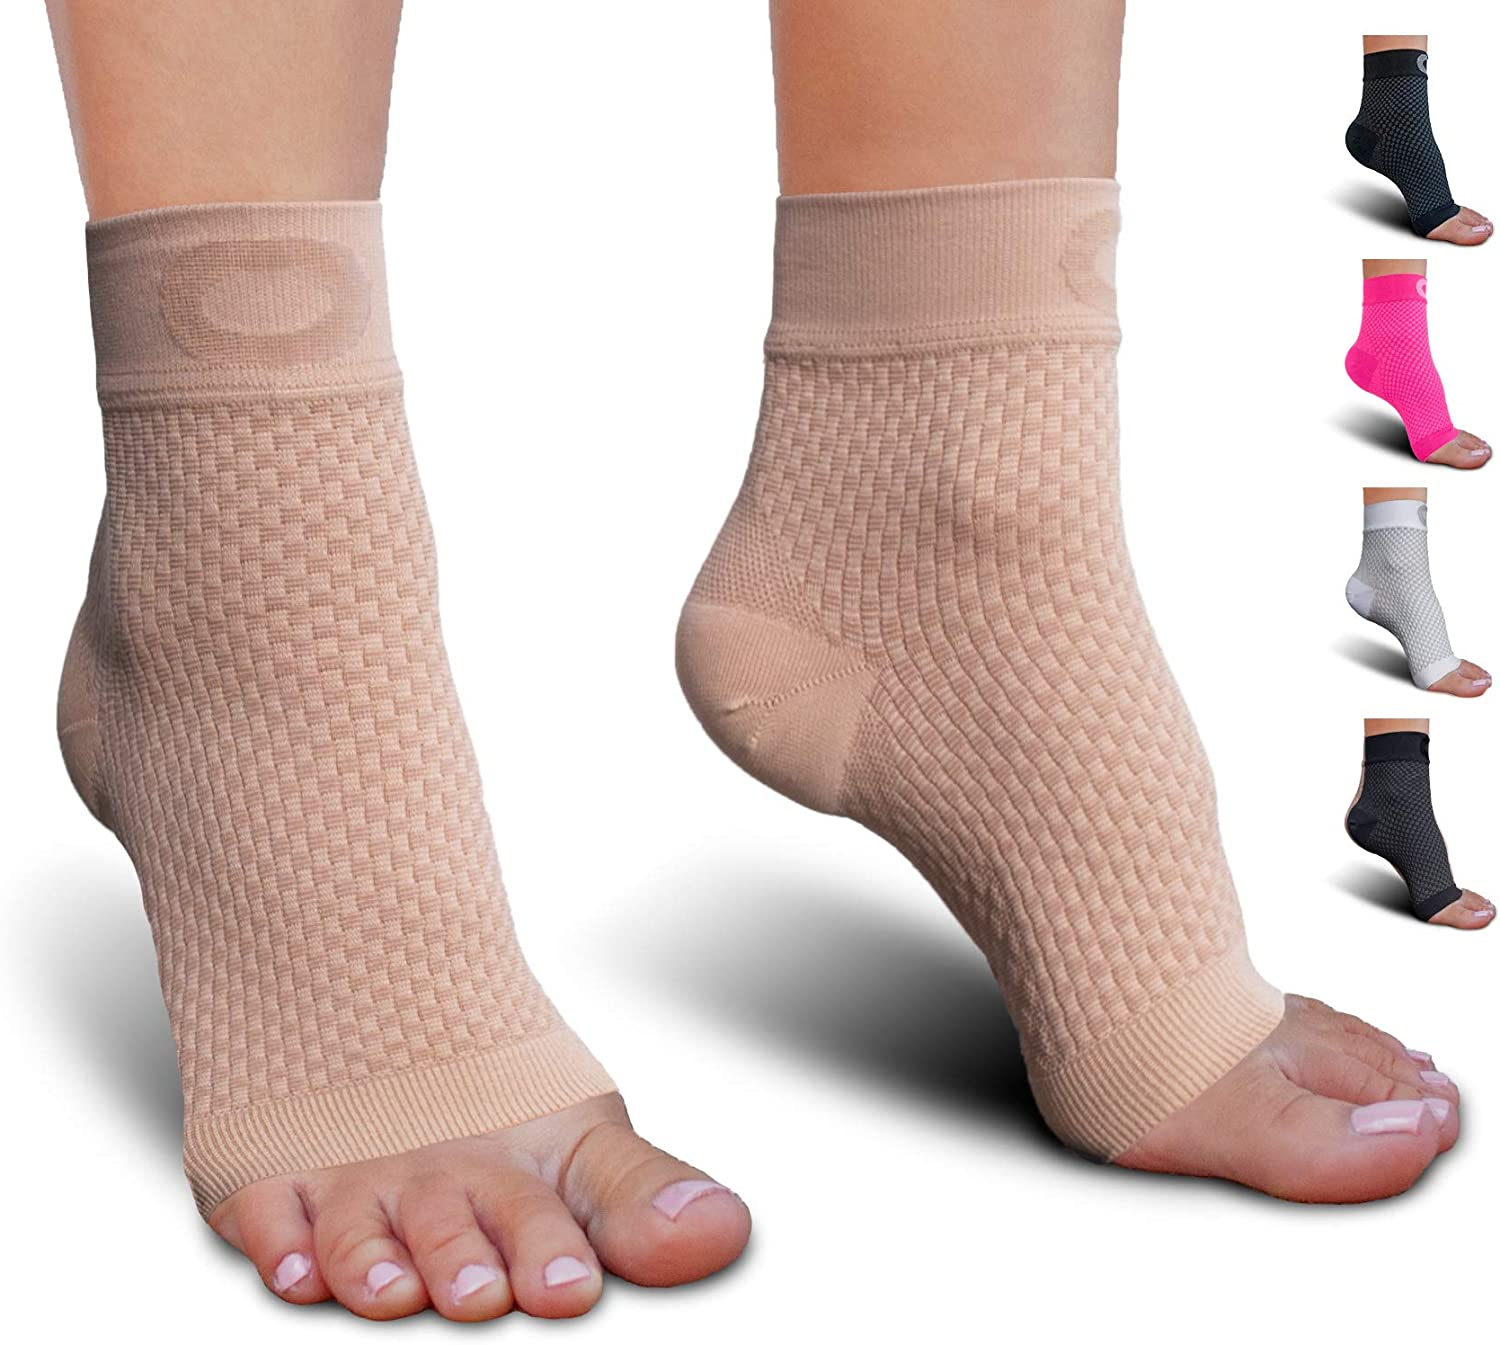 Plantar Fasciitis Socks with Arch Support for Men & Women - Best Ankle Compression Socks for Foot and Heel Pain Relief - Better Than Night Splint Brace, Orthotics, Inserts, Insoles: Sports & Outdoors